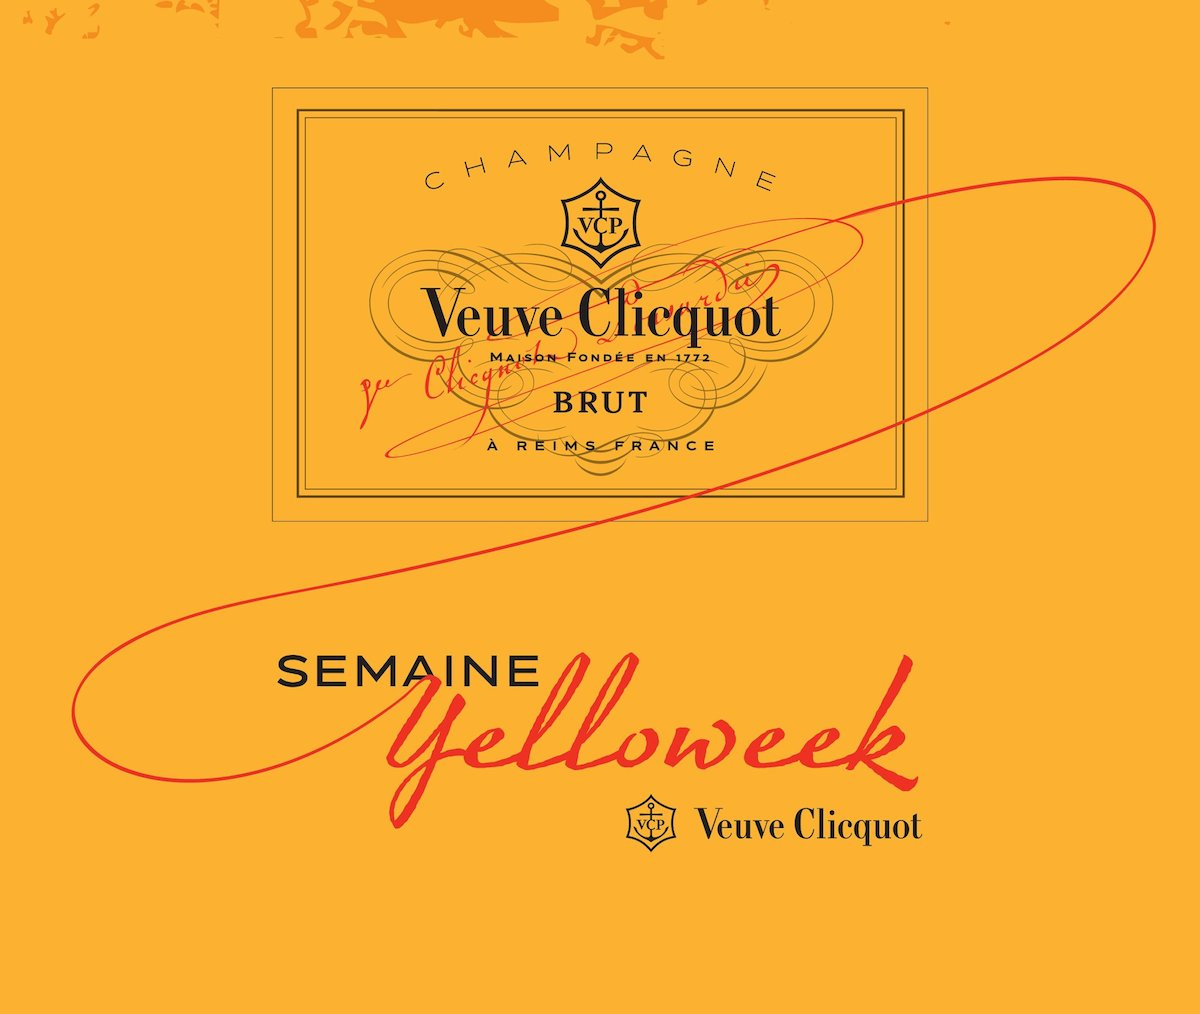 Yelloweek 2014 from Veuve Cliquot